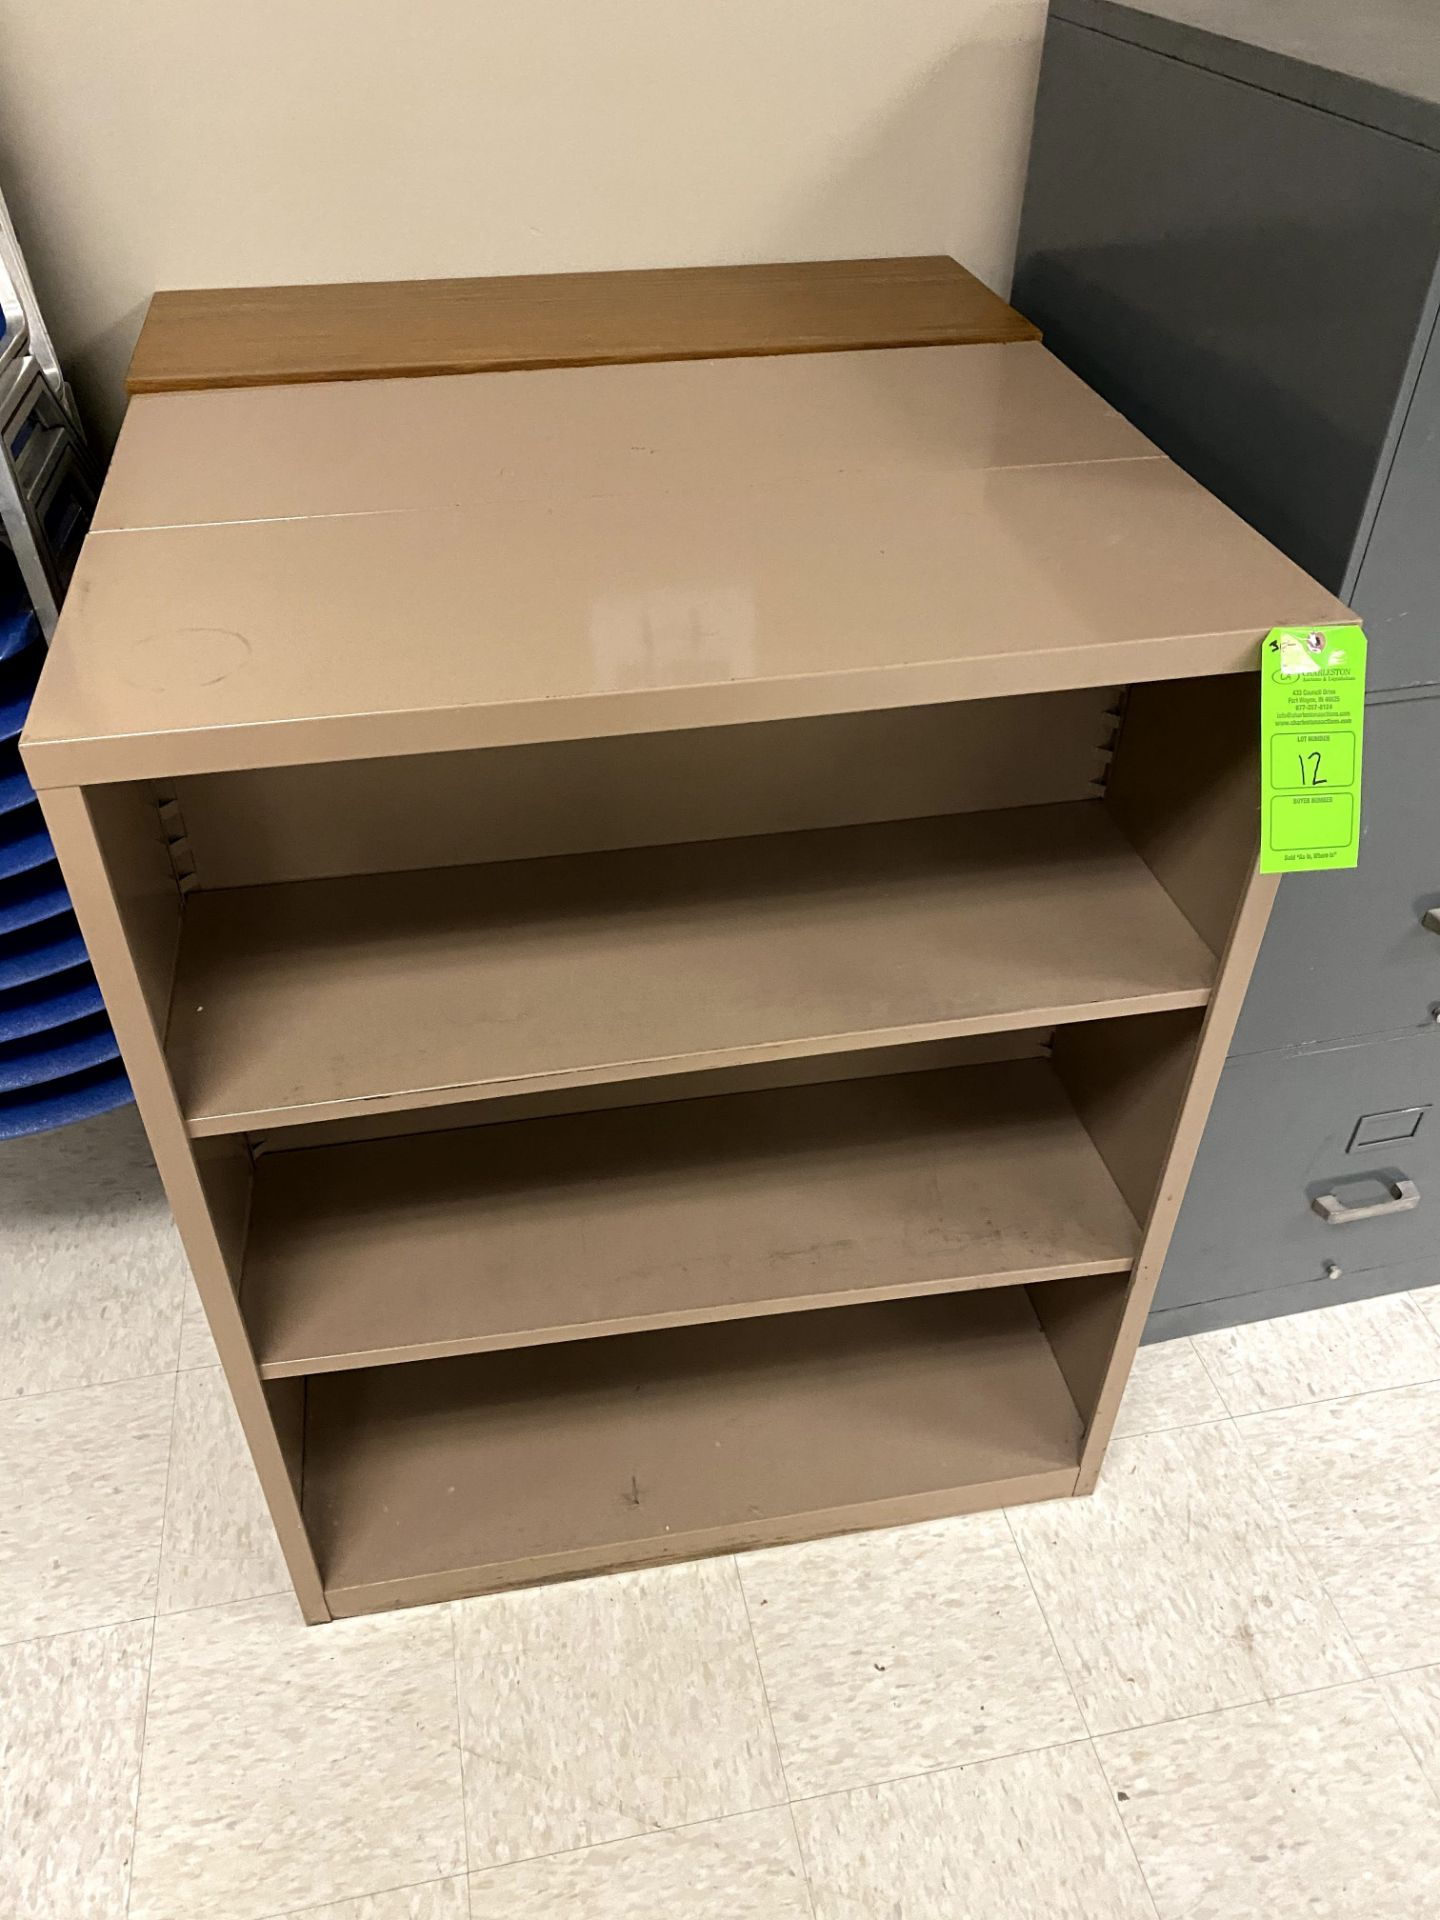 (3) STEELCASE BOOK SHELVE(S) -- (7625 OMNITECH PLACE VICTOR NEW YORK)